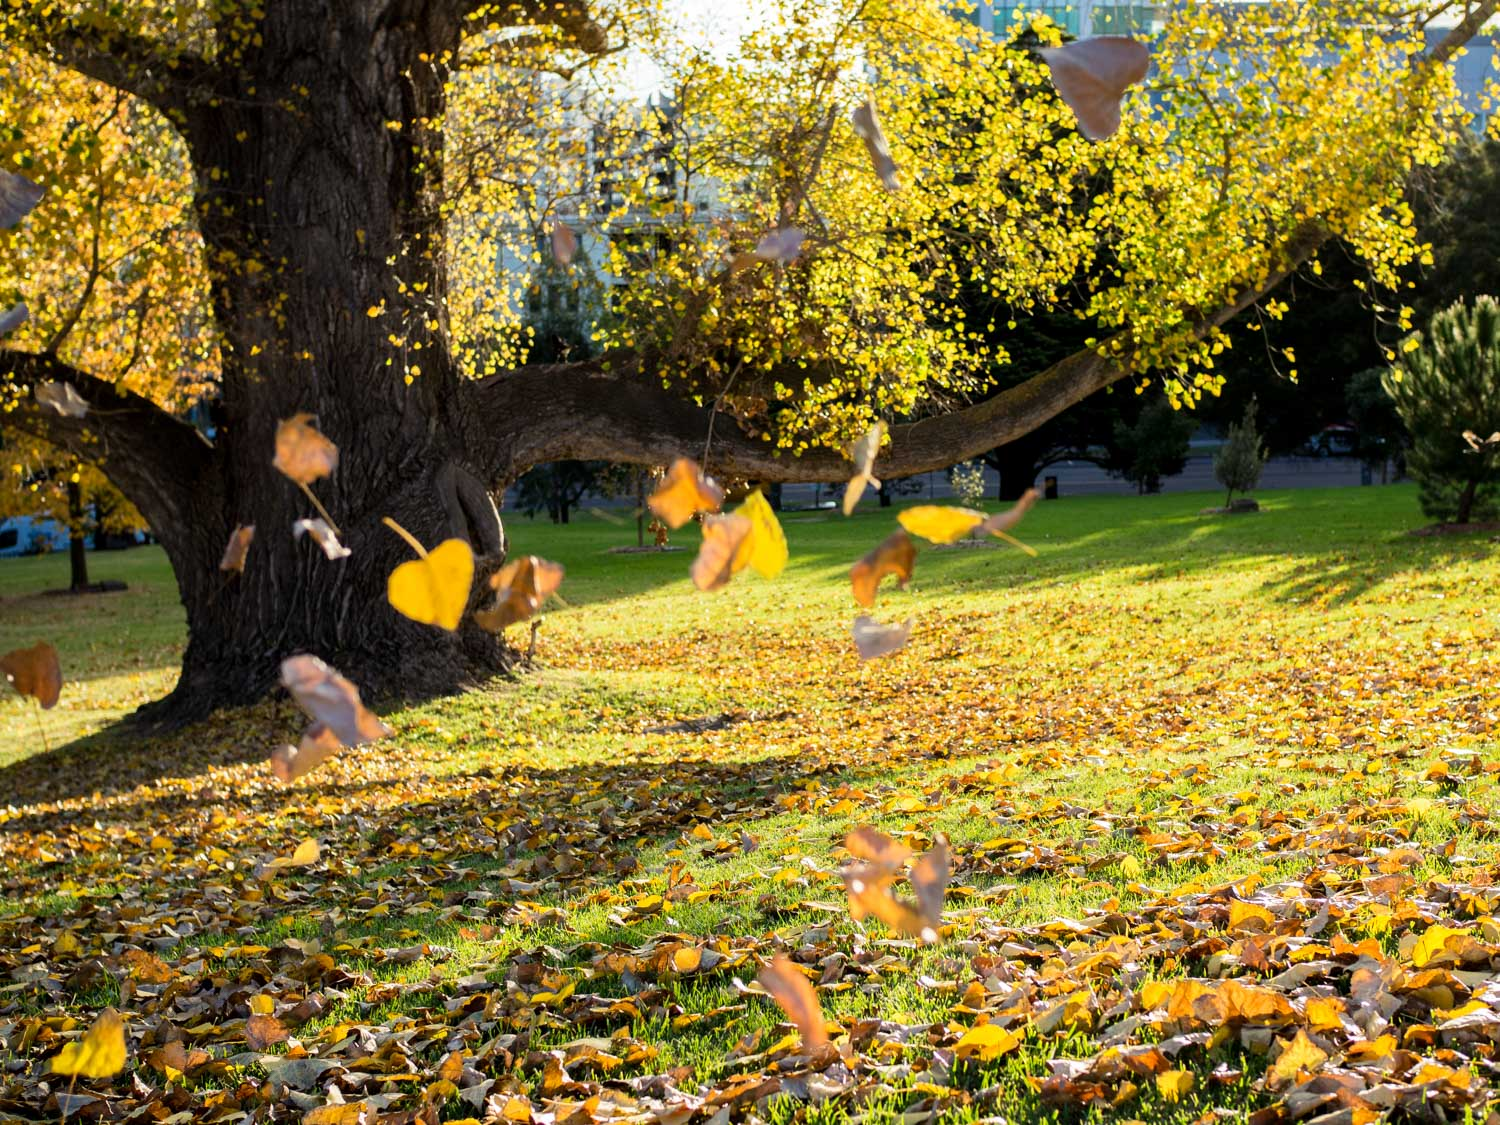 Falling Autumn leaves in the Botanical Gardens, Melbourne.